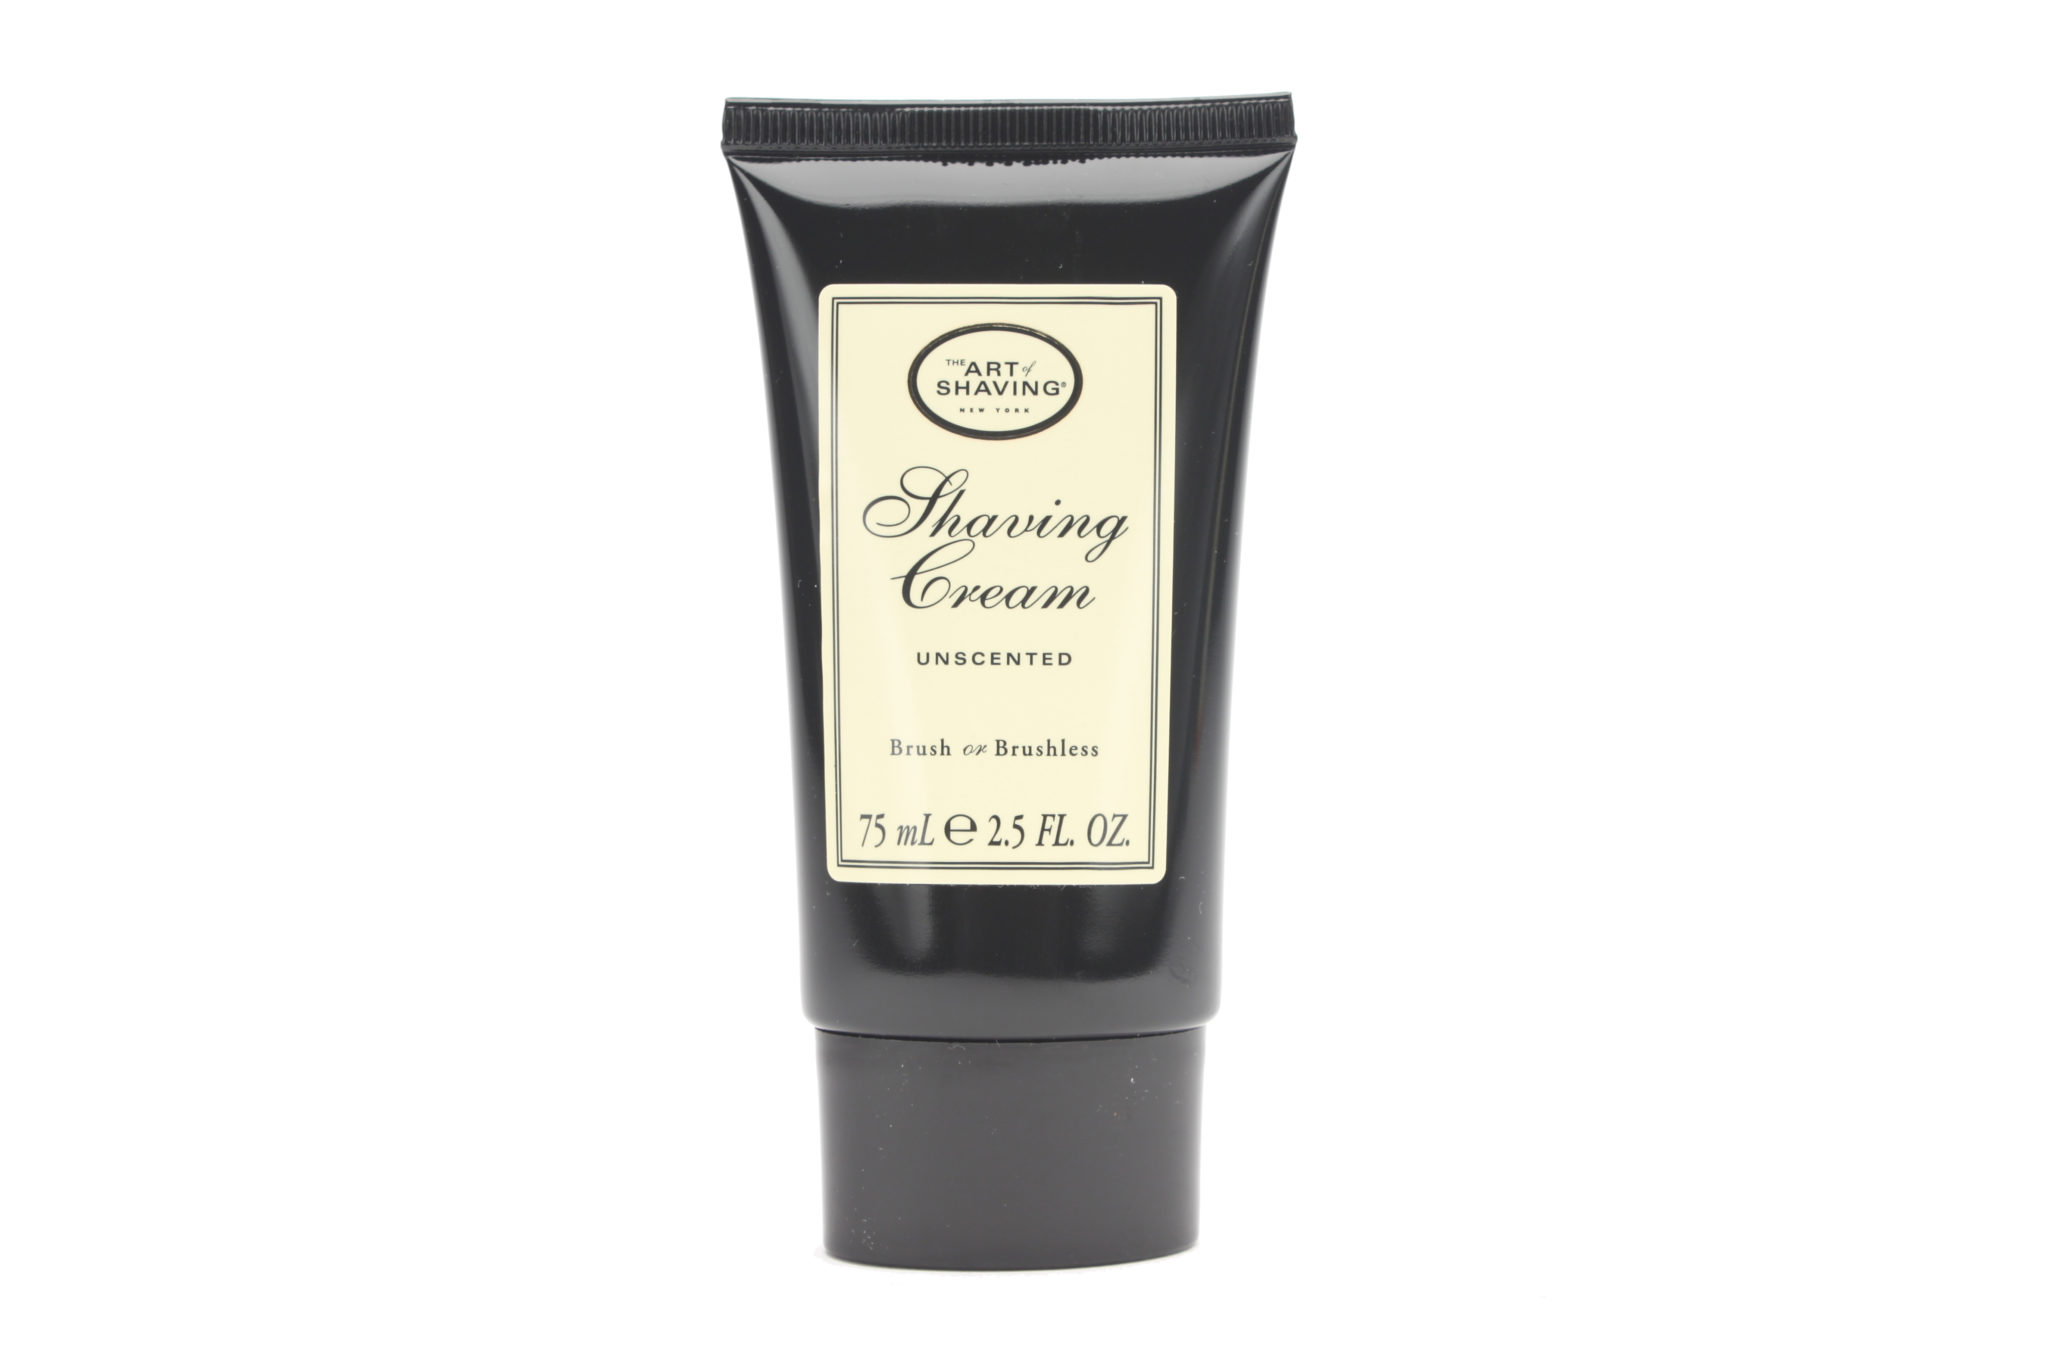 37029 Unscented Shaving Cream 2.5 oz Front